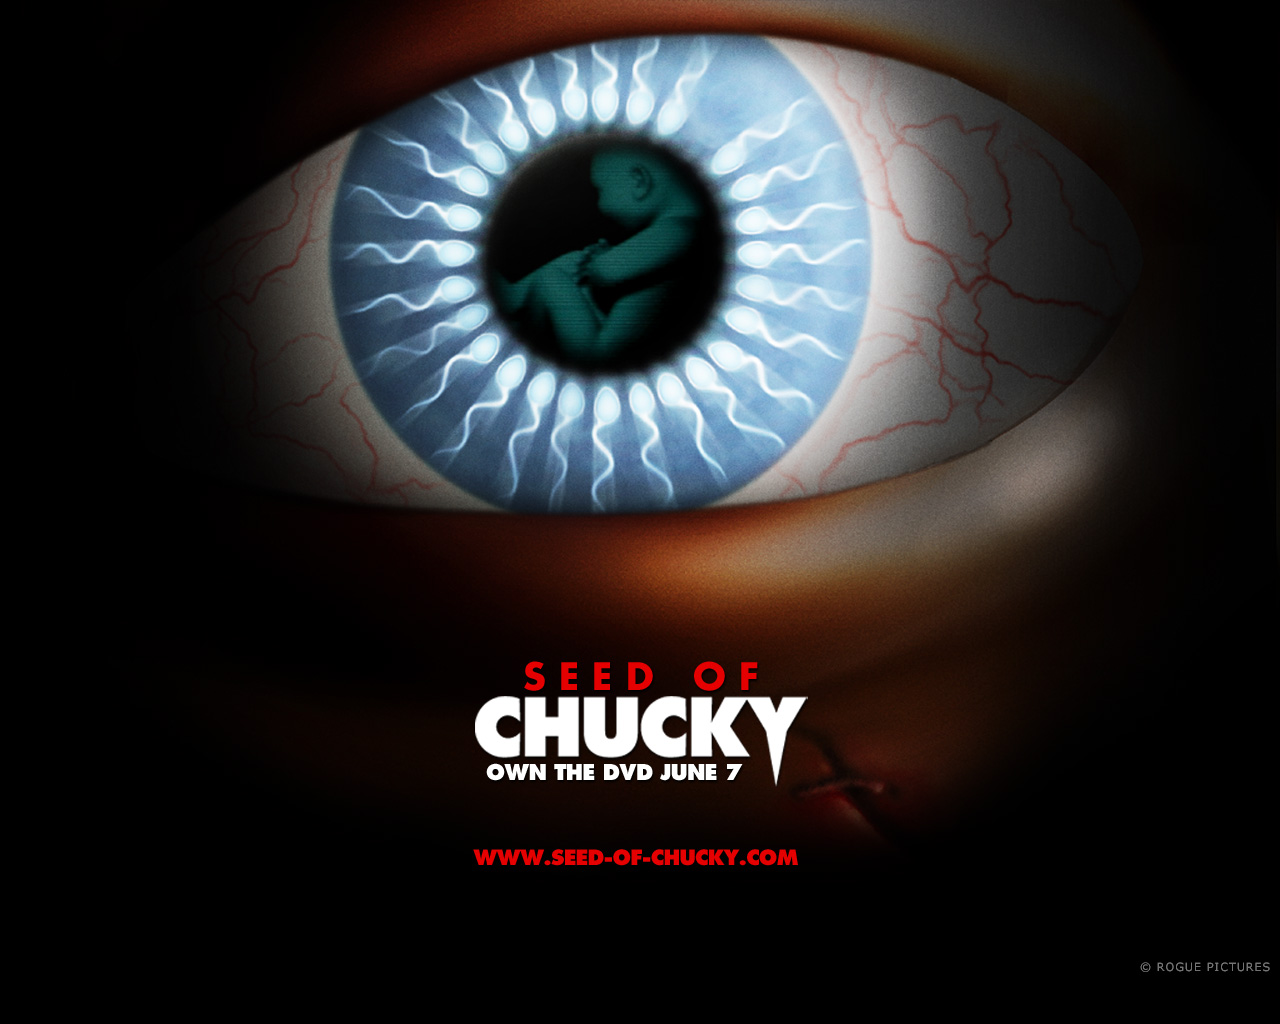 chucky images seed of chucky hd wallpaper and background